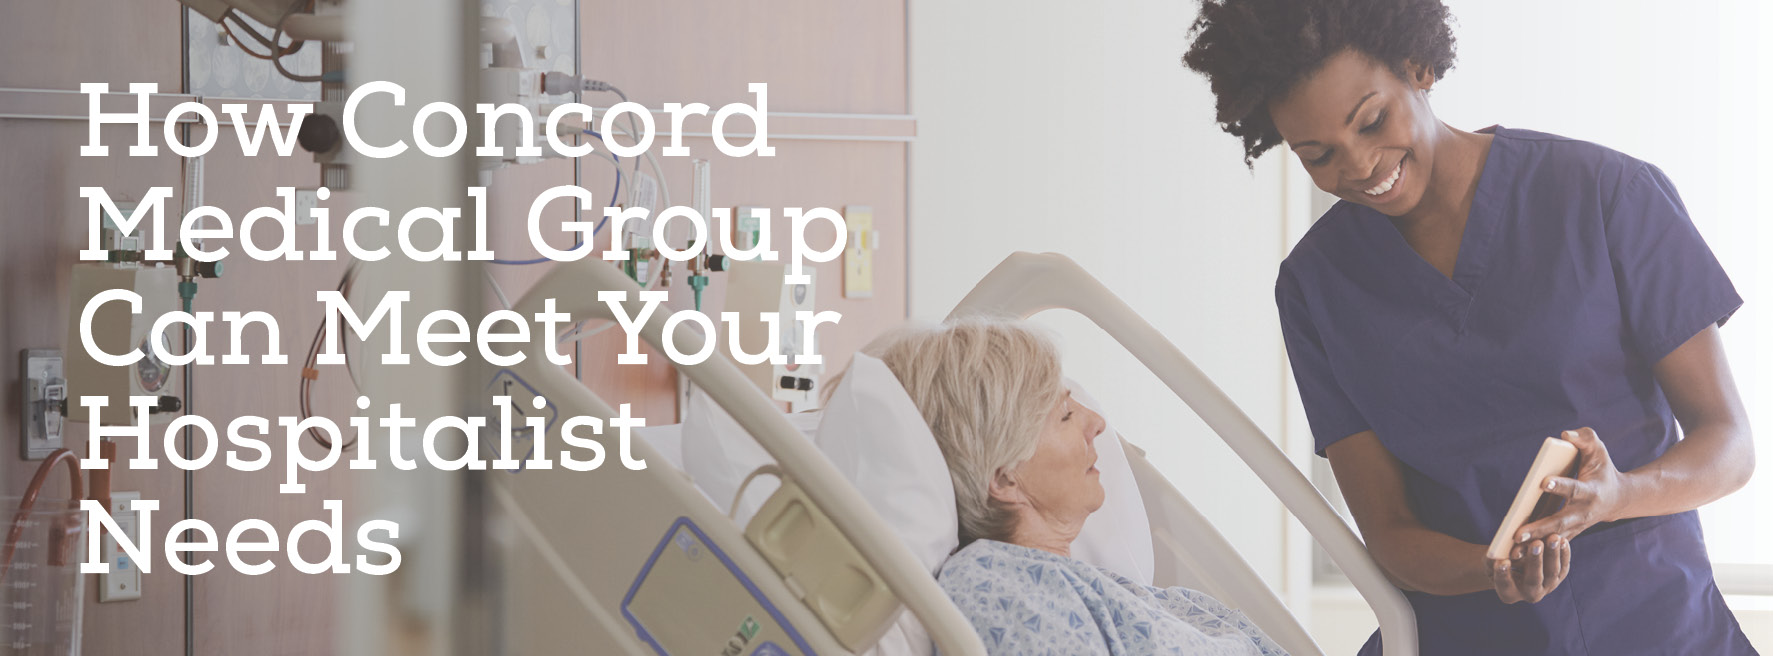 How Concord Medical Group Can Meet Your Hospitalist Needs